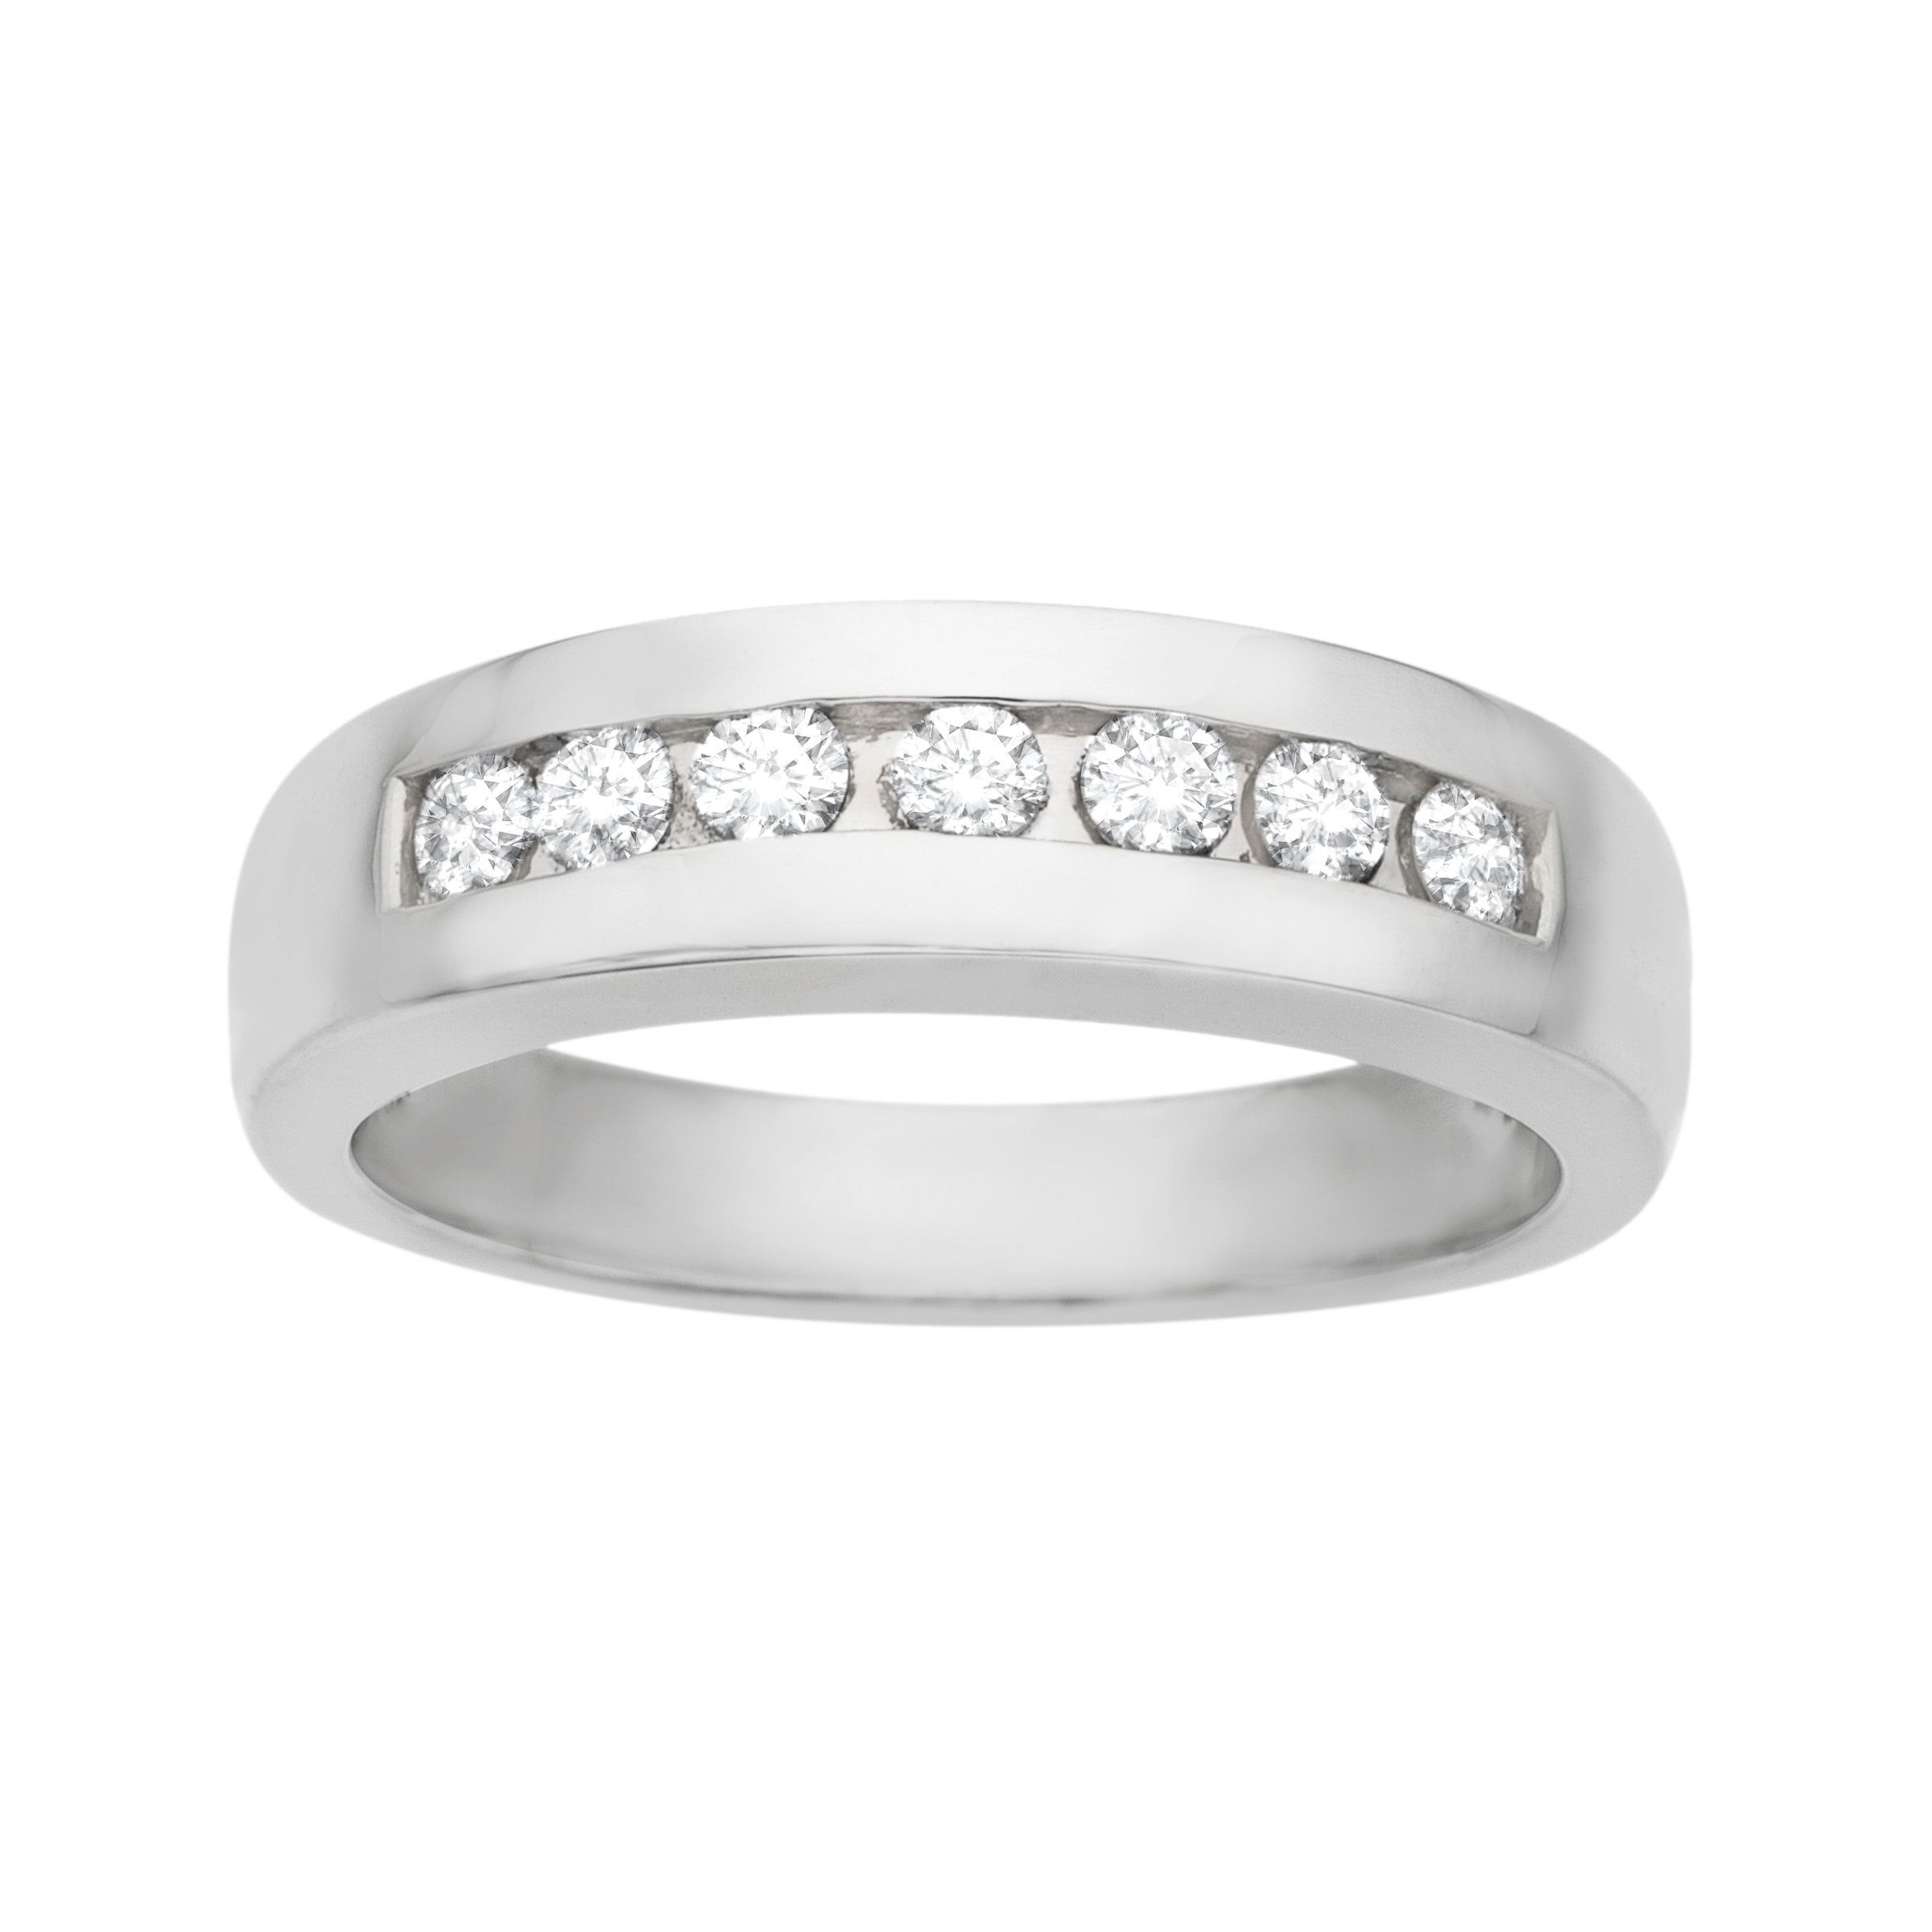 wedding top anniversary diamond earth band brilliant eternity platinumdiamond ring platinum ct carat tw white bands